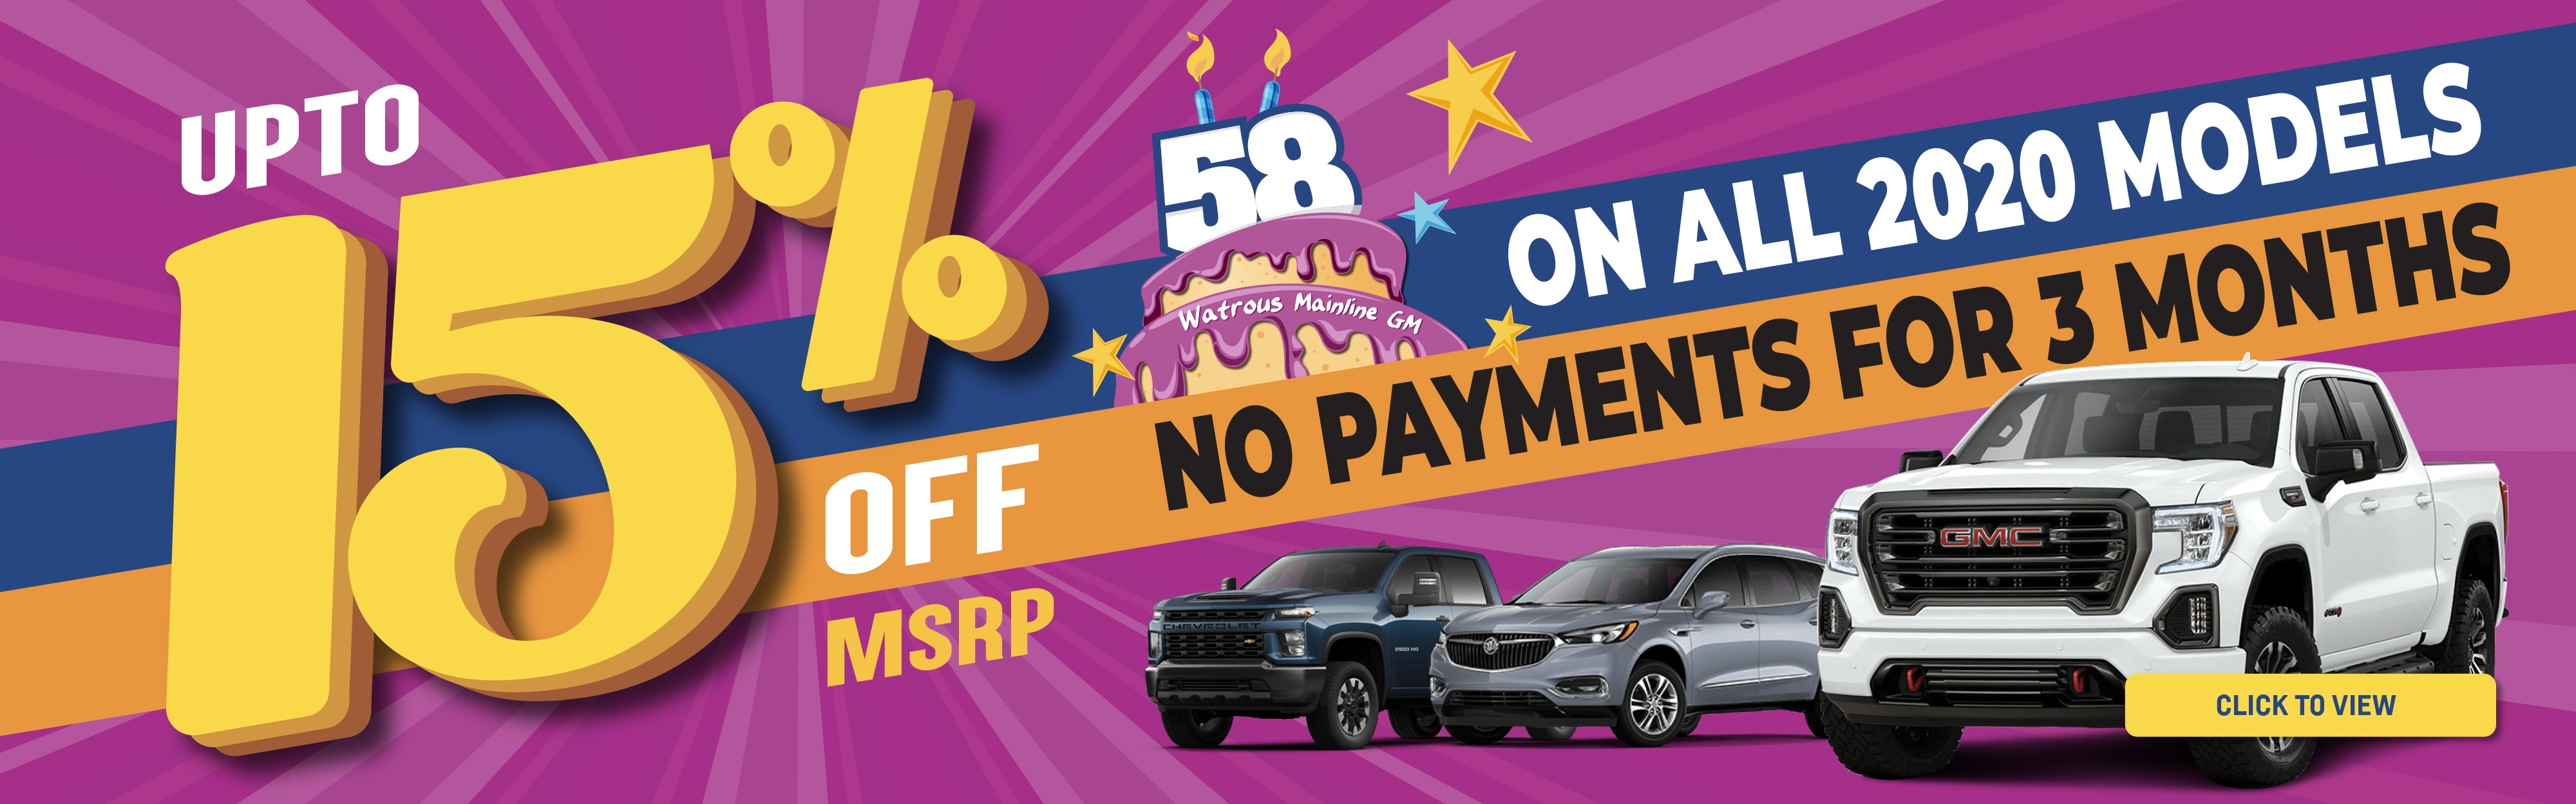 Save up to 15% on 2020 Vehicles at Watrous Mainline GM